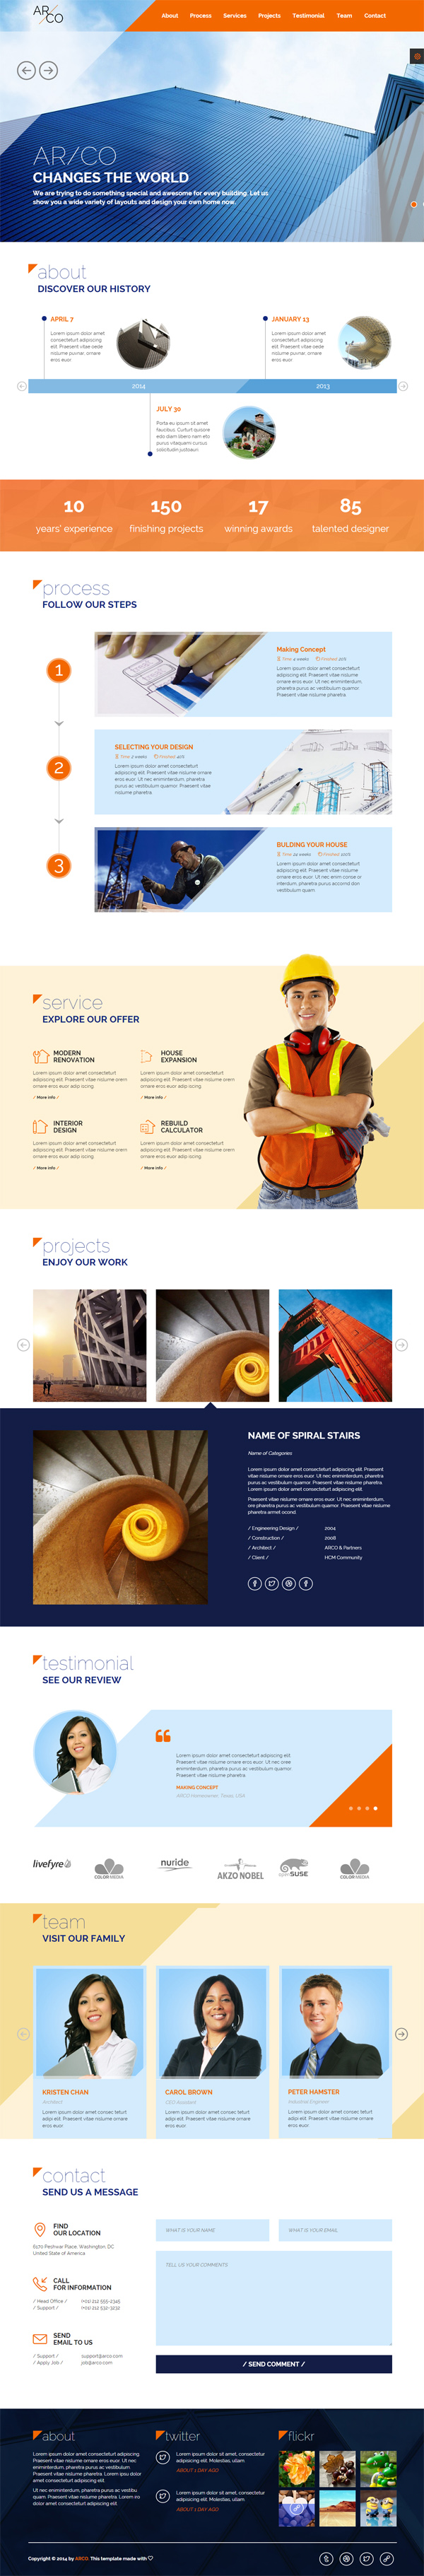 Arco - One Page HTML Template